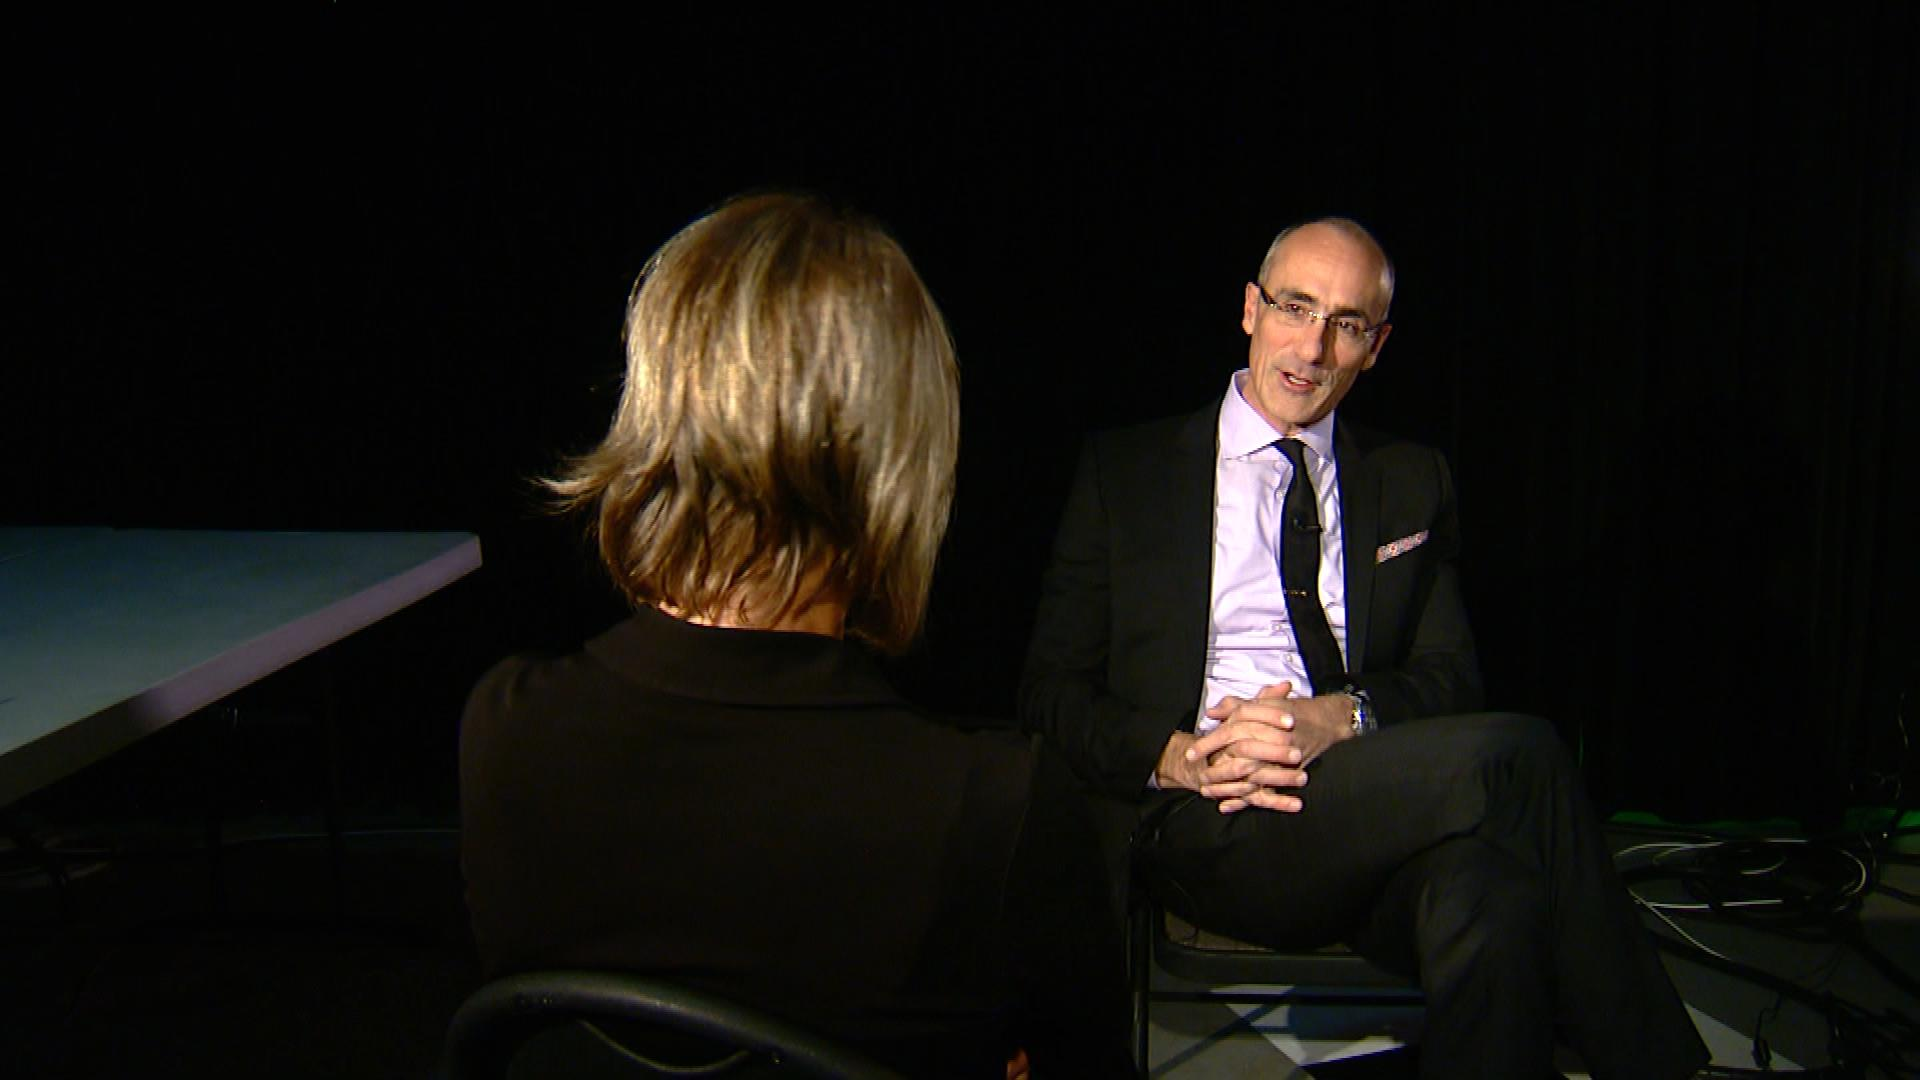 CBS4 Political Specialist Shaun Boyd sat down with Arthur Brooks (credit: CBS)